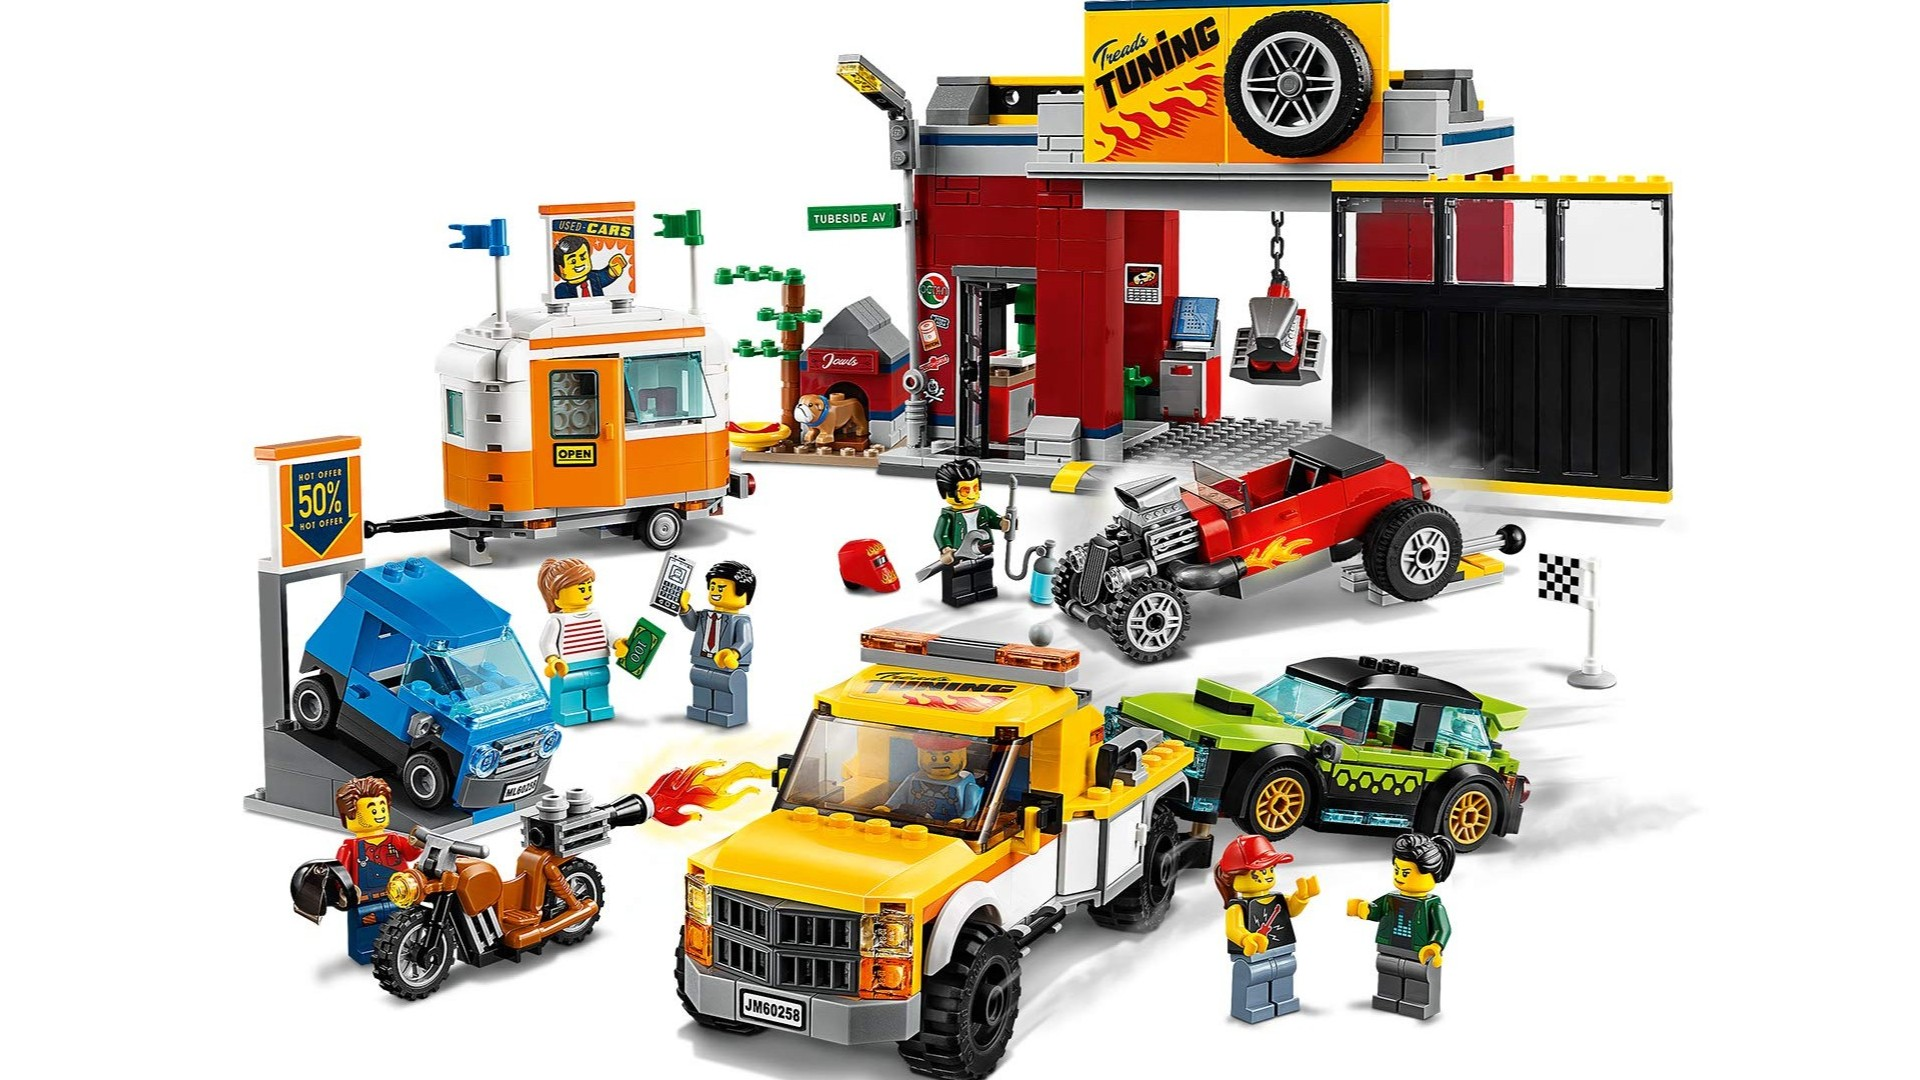 Best Lego City sets: Tuning Workshop